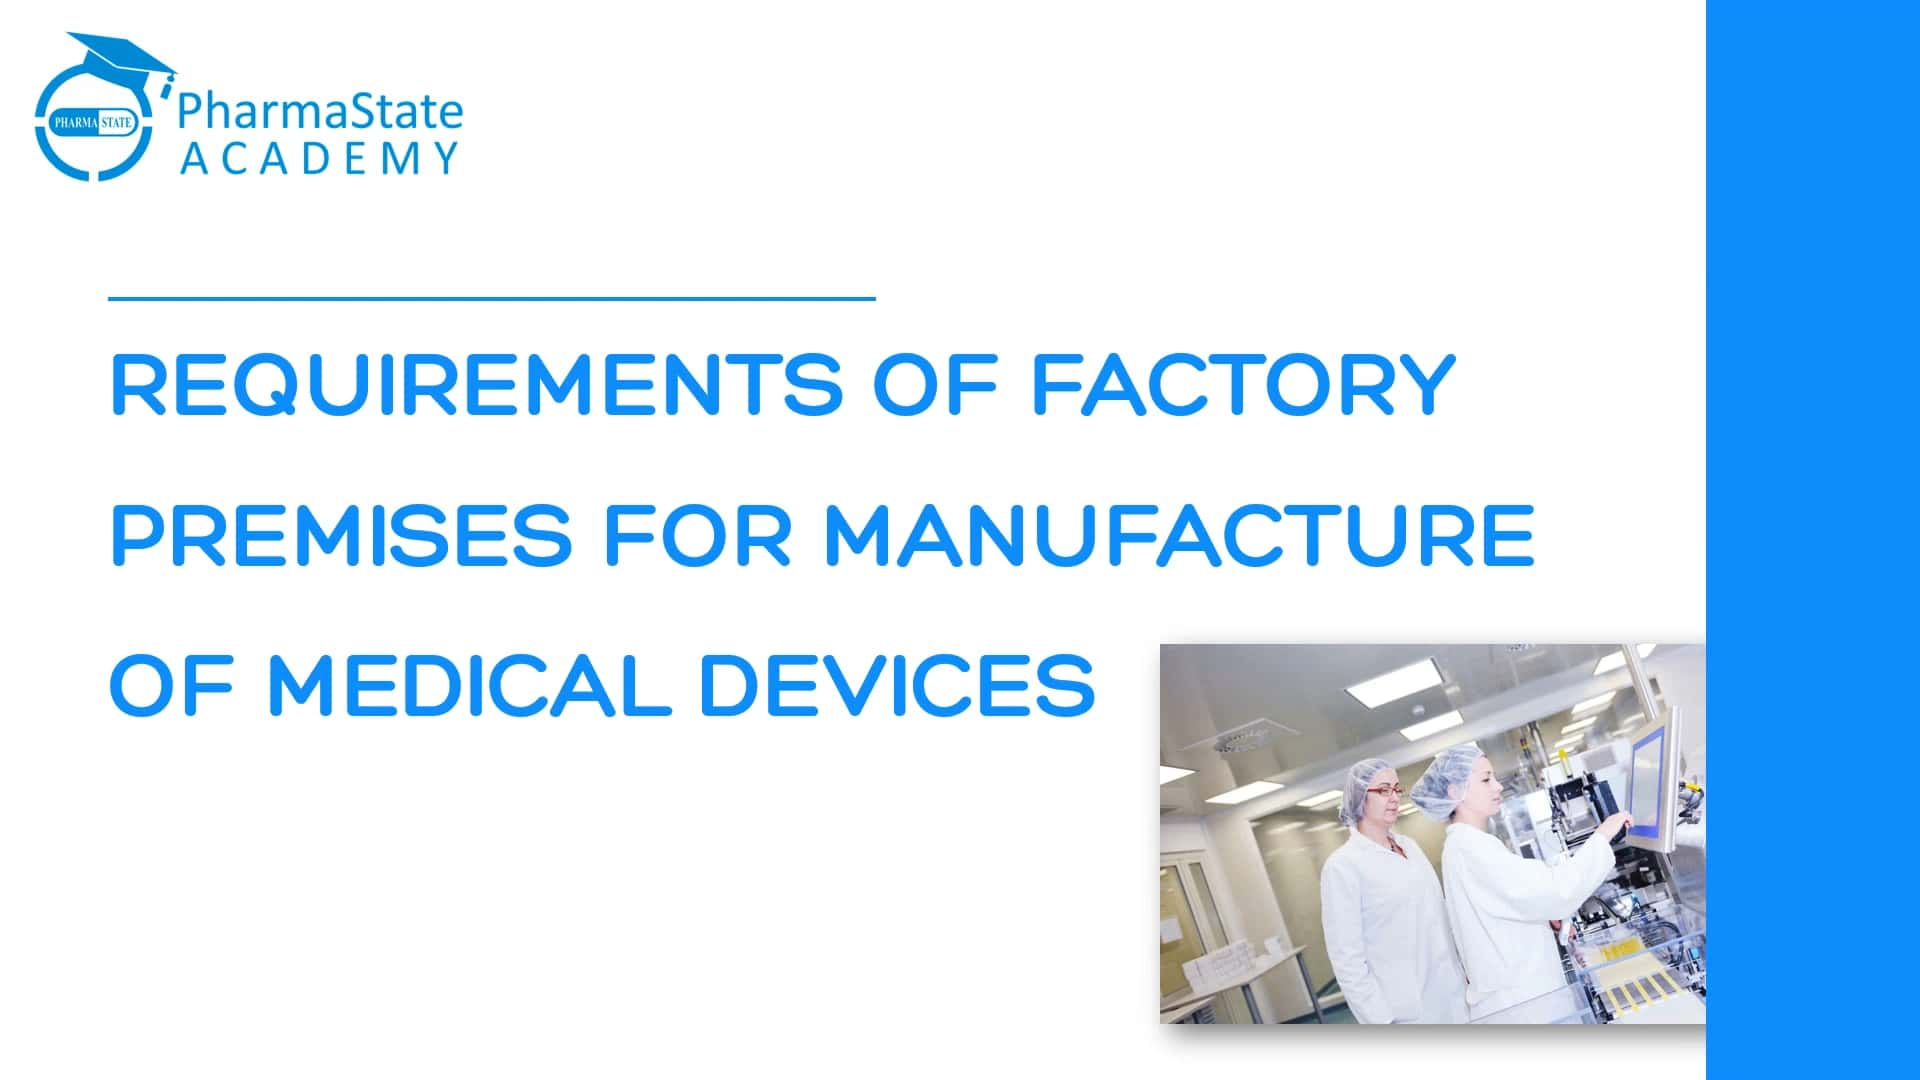 Part-1 REQUIREMENTS OF FACTORY PREMISES FOR MANUFACTURE OF MEDICAL DEVICES